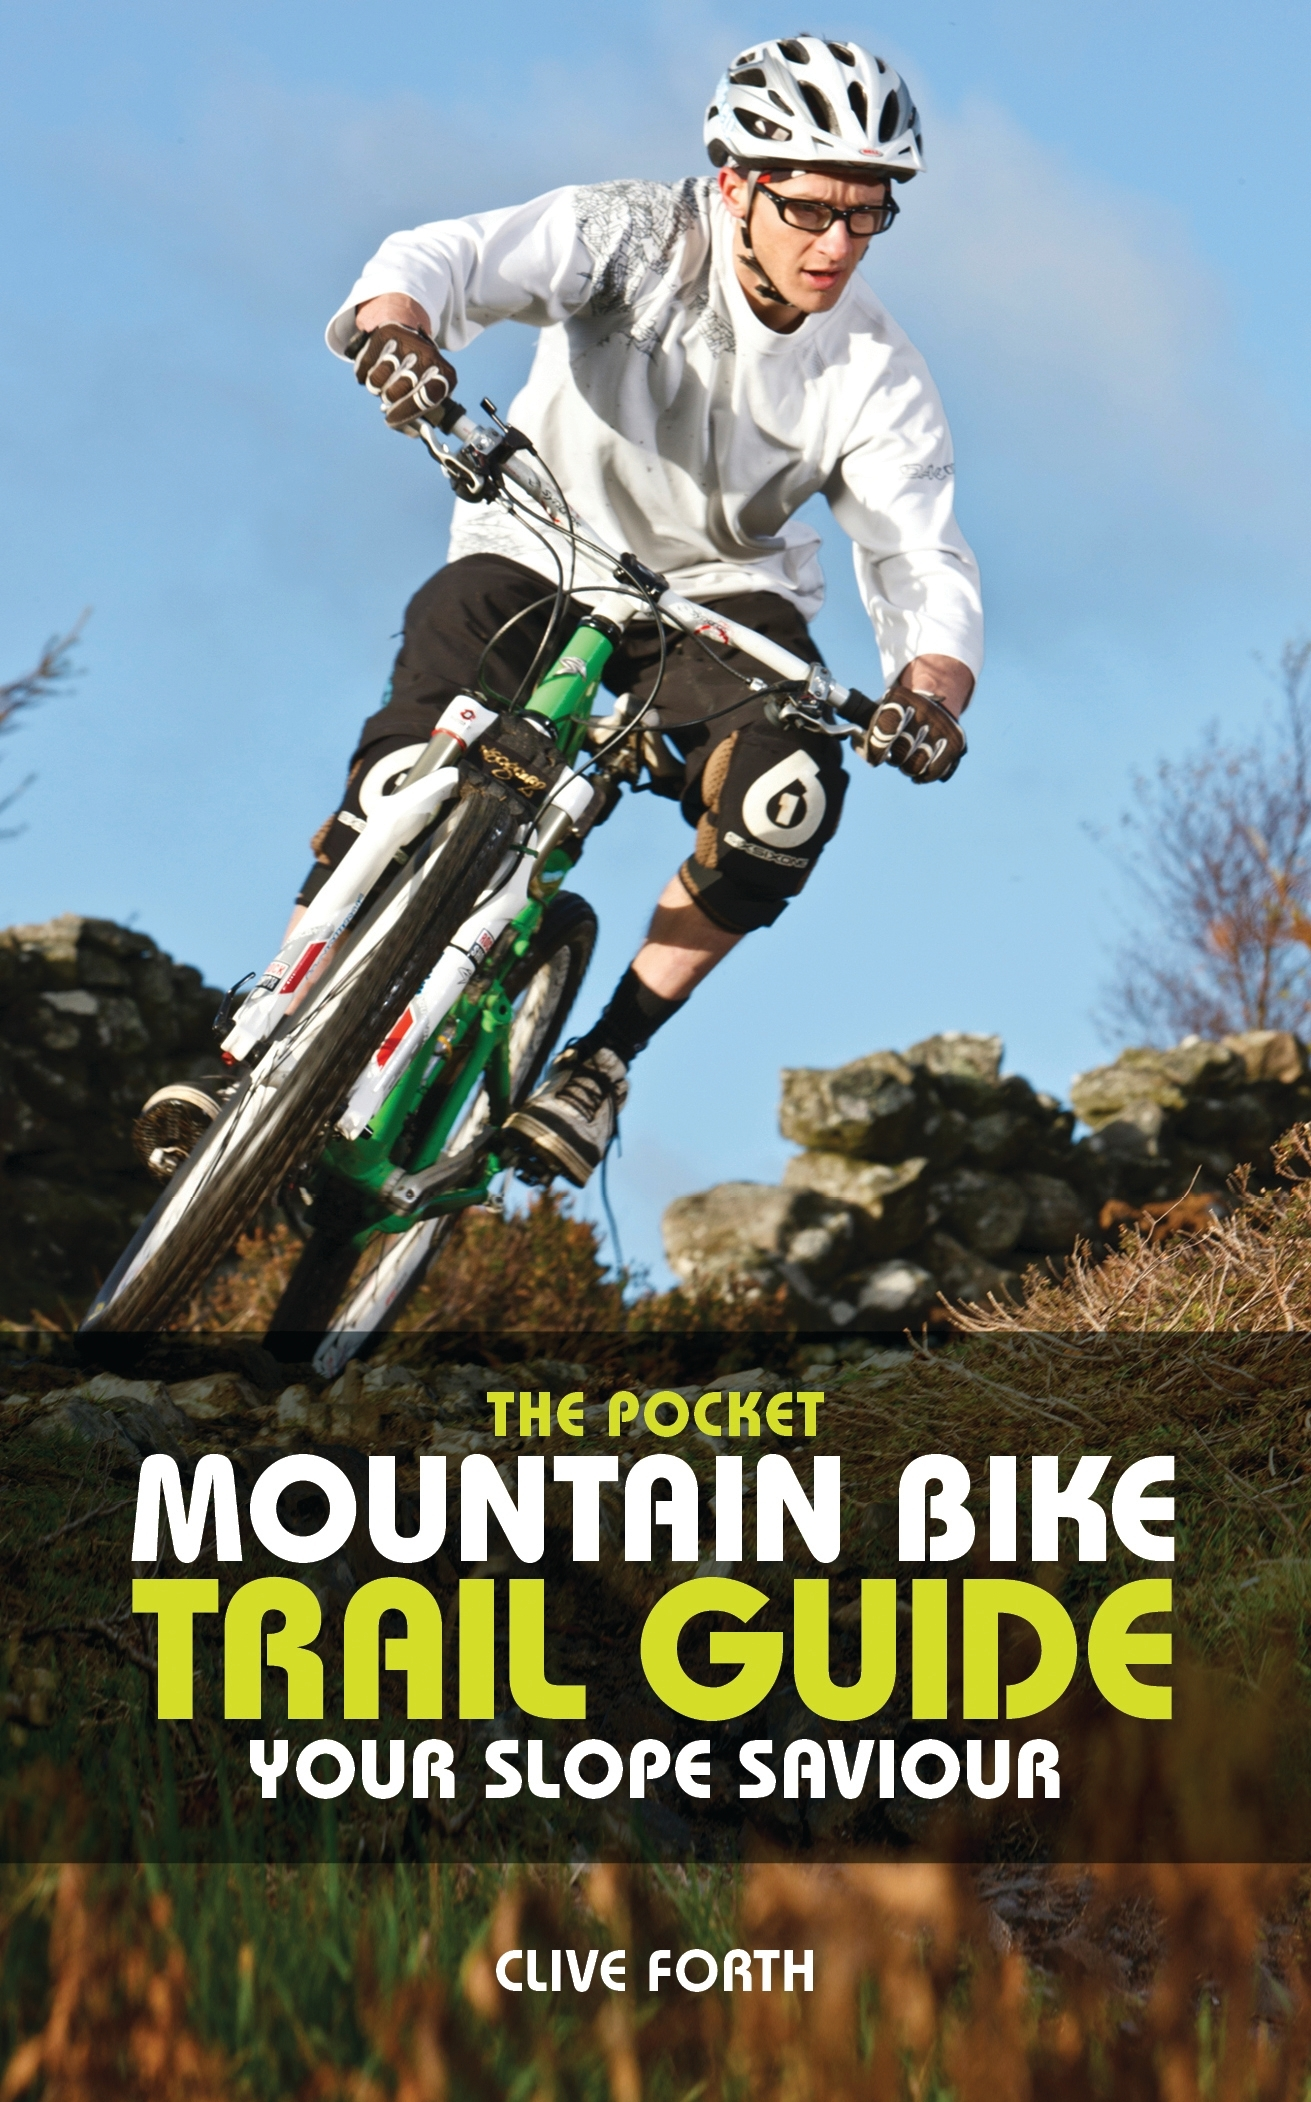 The Pocket Mountain Bike Trail Guide Your slope saviour